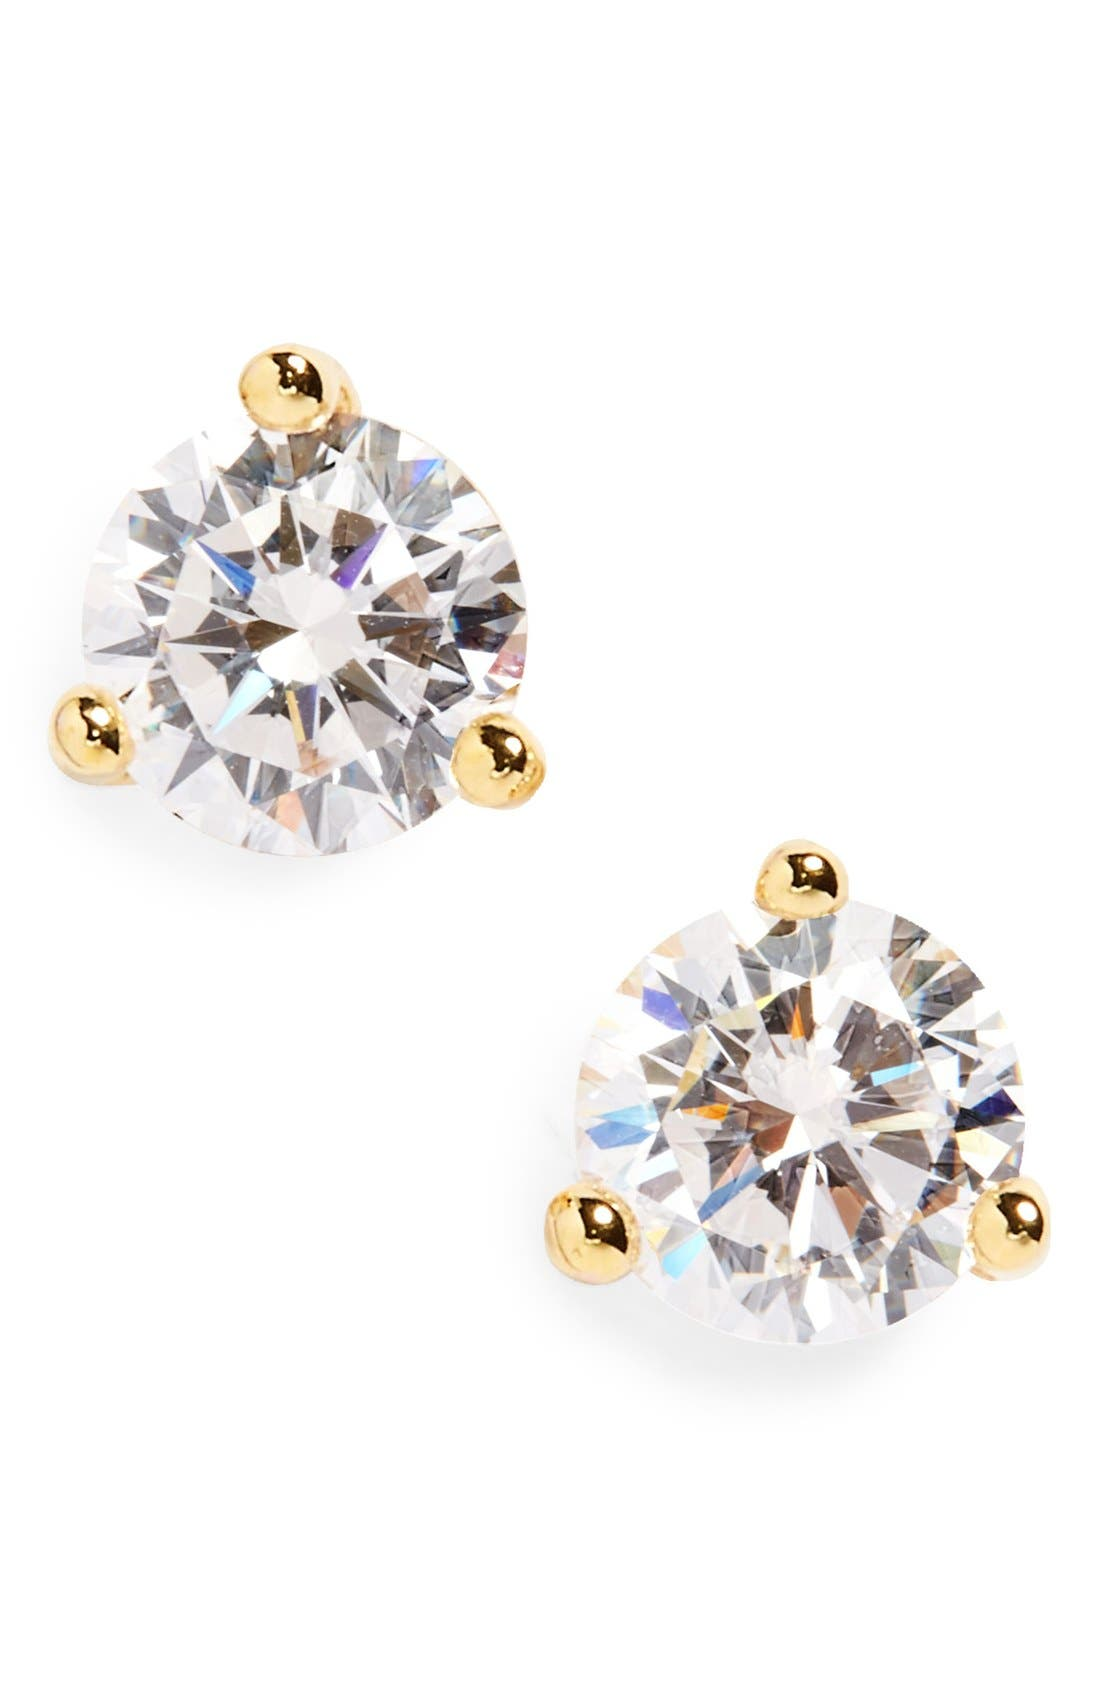 Main Image - Nordstrom Round 0.50ct Cubic Zirconia Earrings